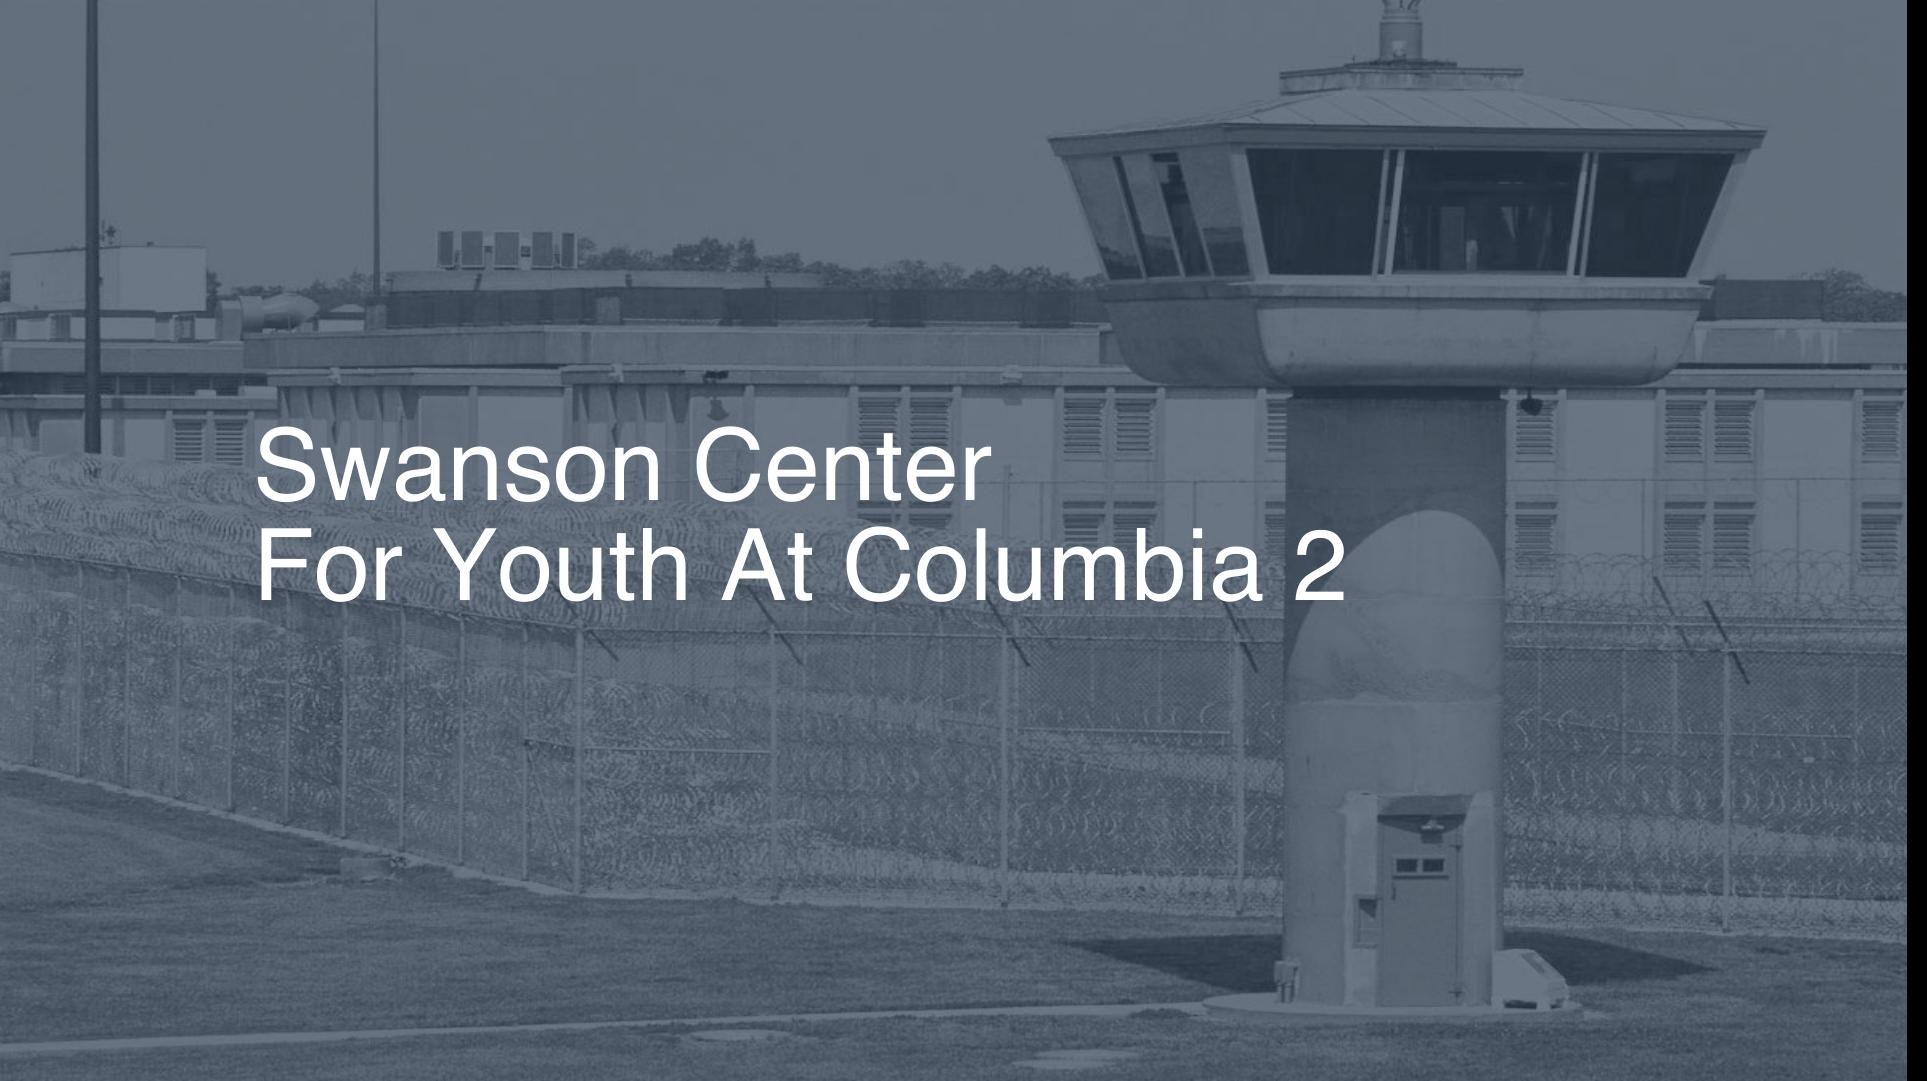 Swanson Center for Youth at Columbia correctional facility picture